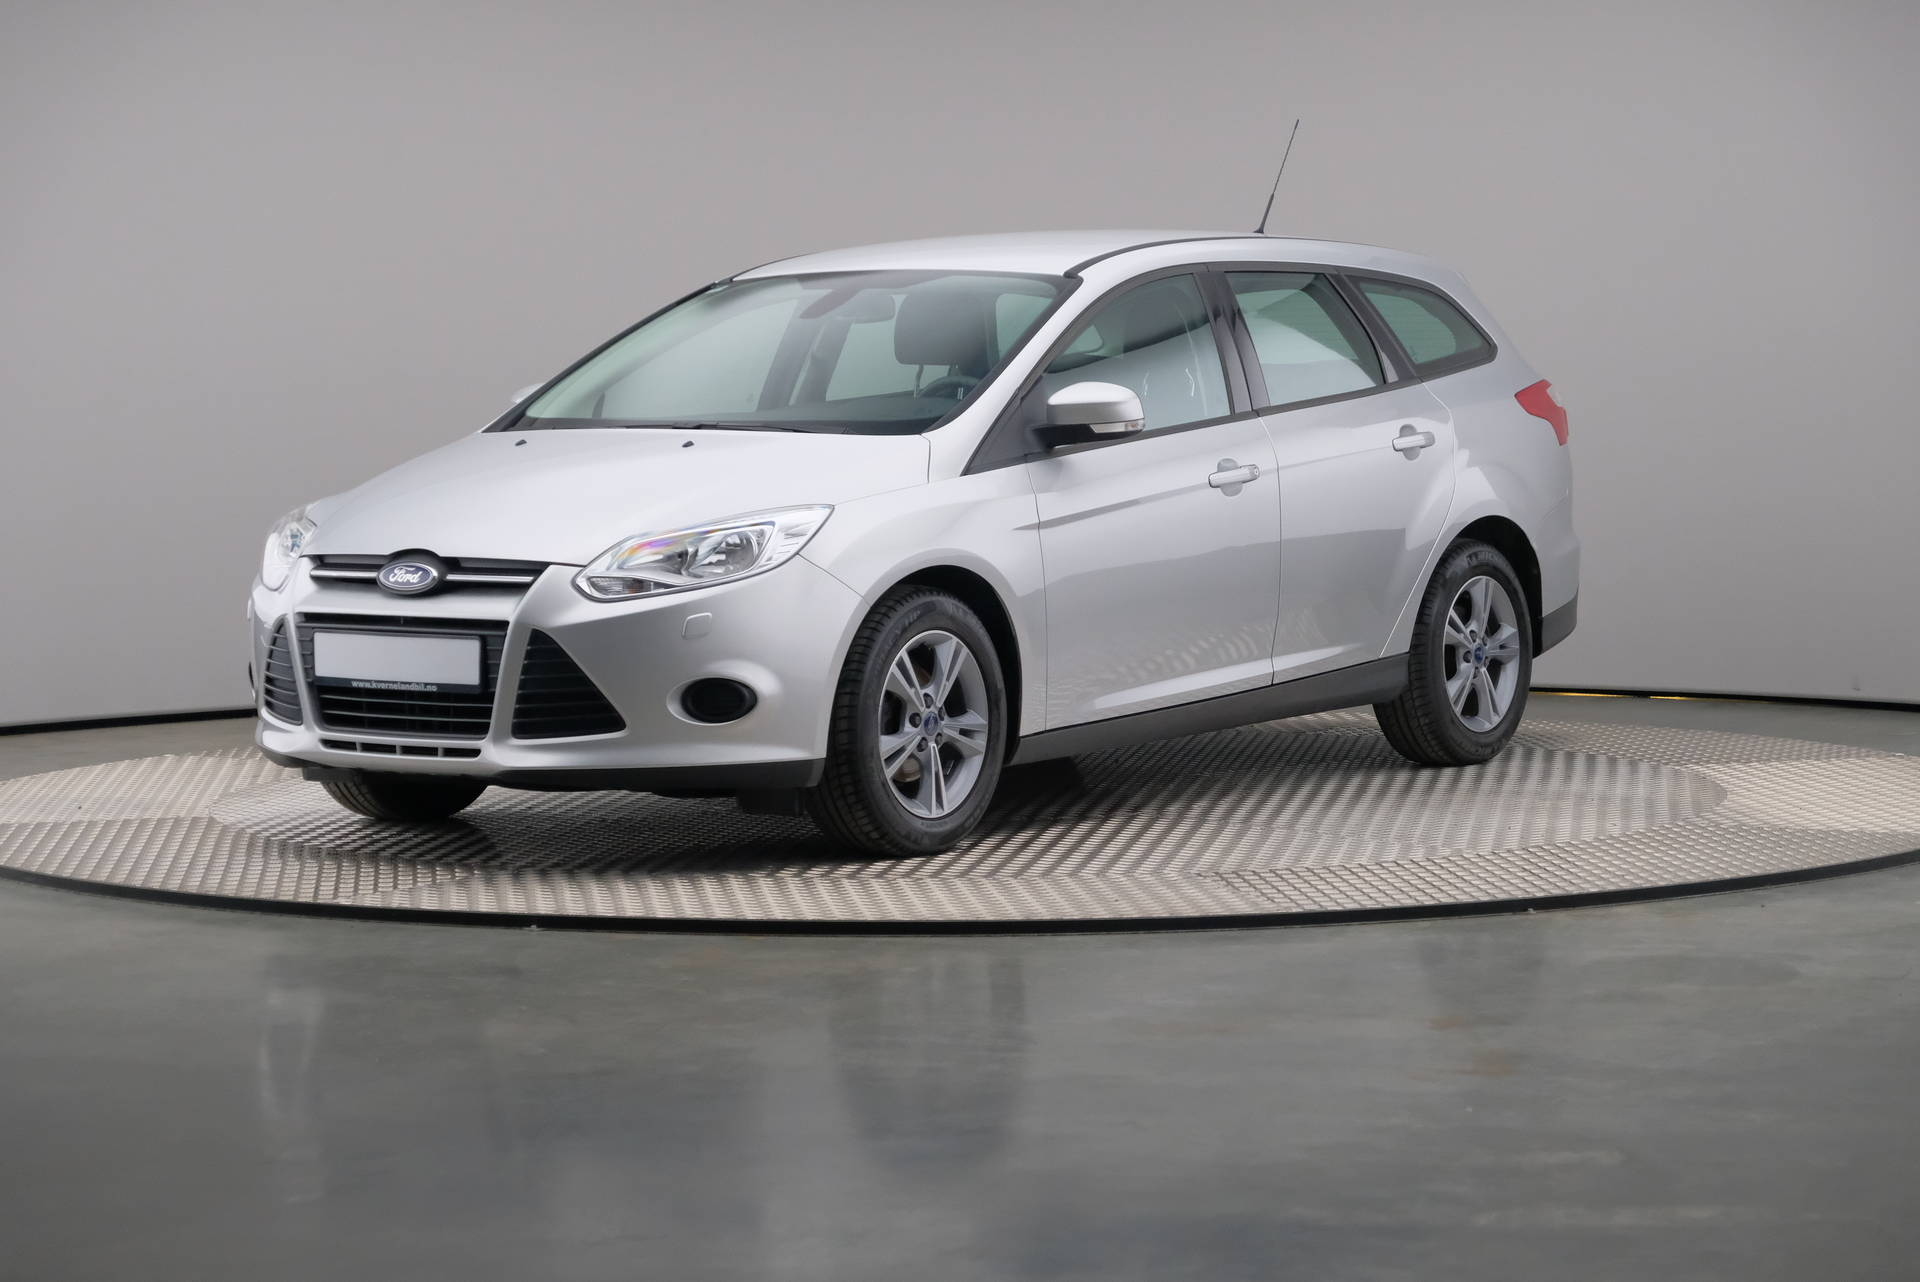 Ford Focus 1.1 100HK Trend PDC/BT, 360-image35